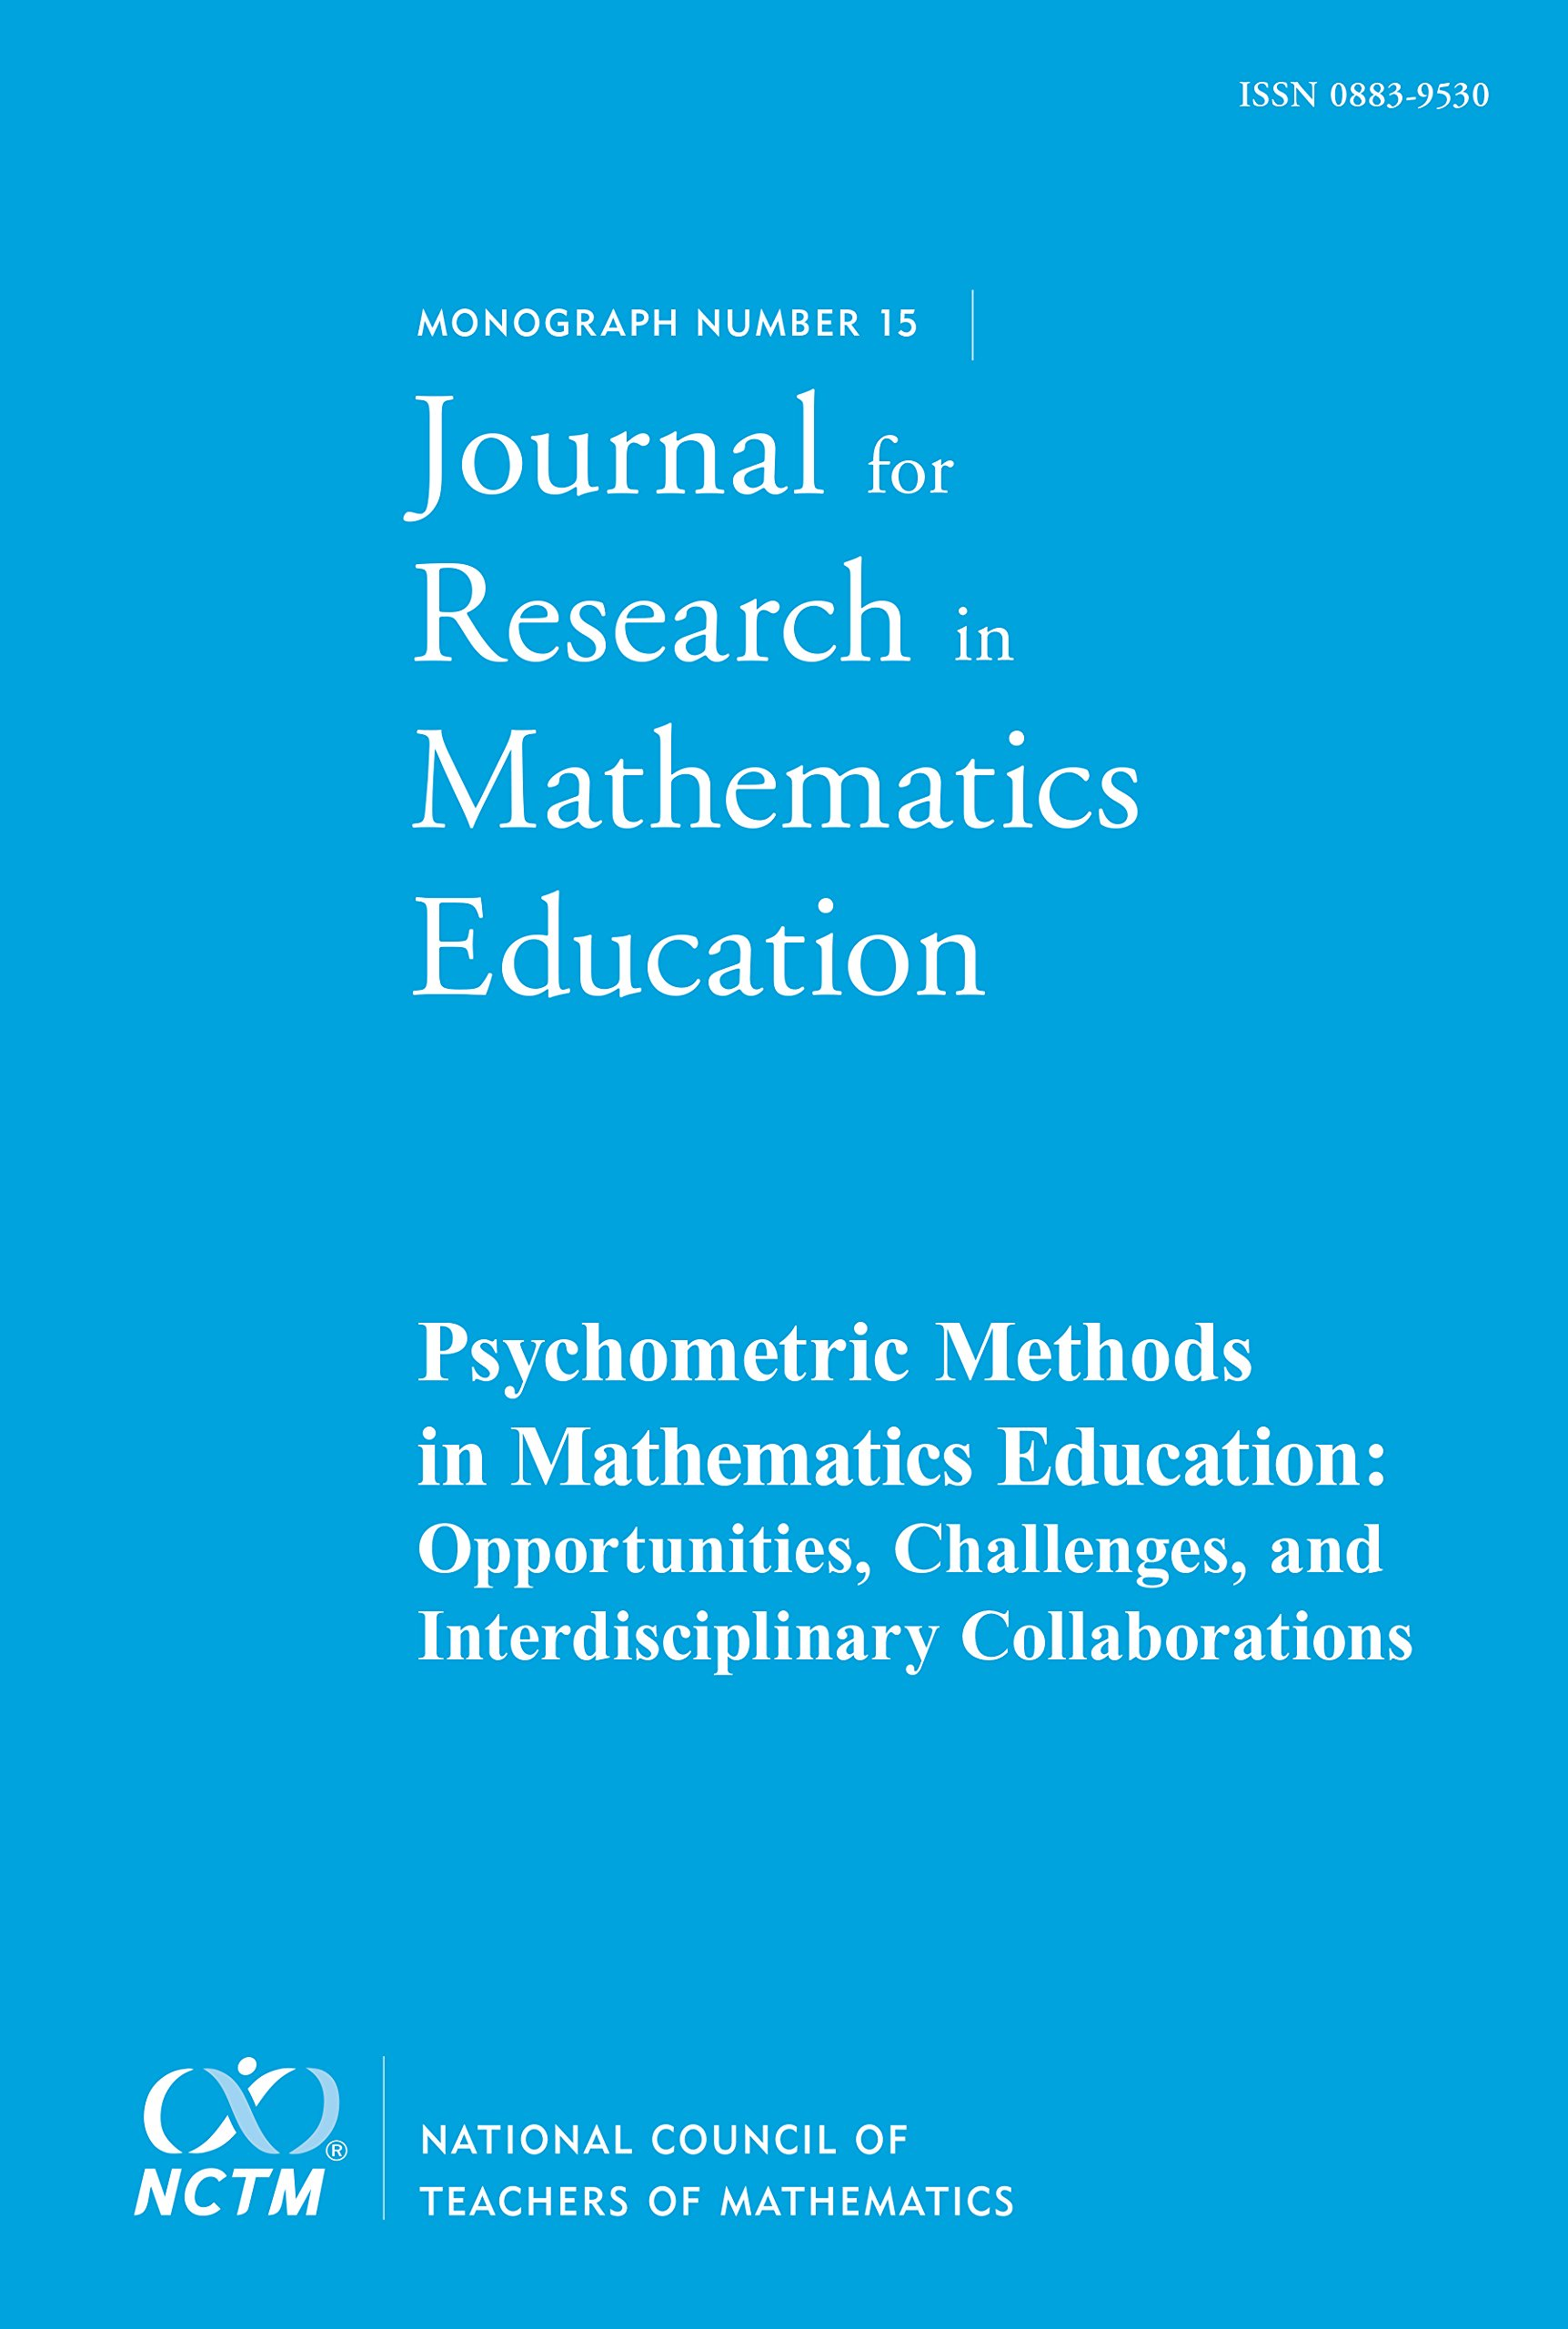 Download Psychometric Methods in Mathematics Education, JRME Monograph #15 PDF